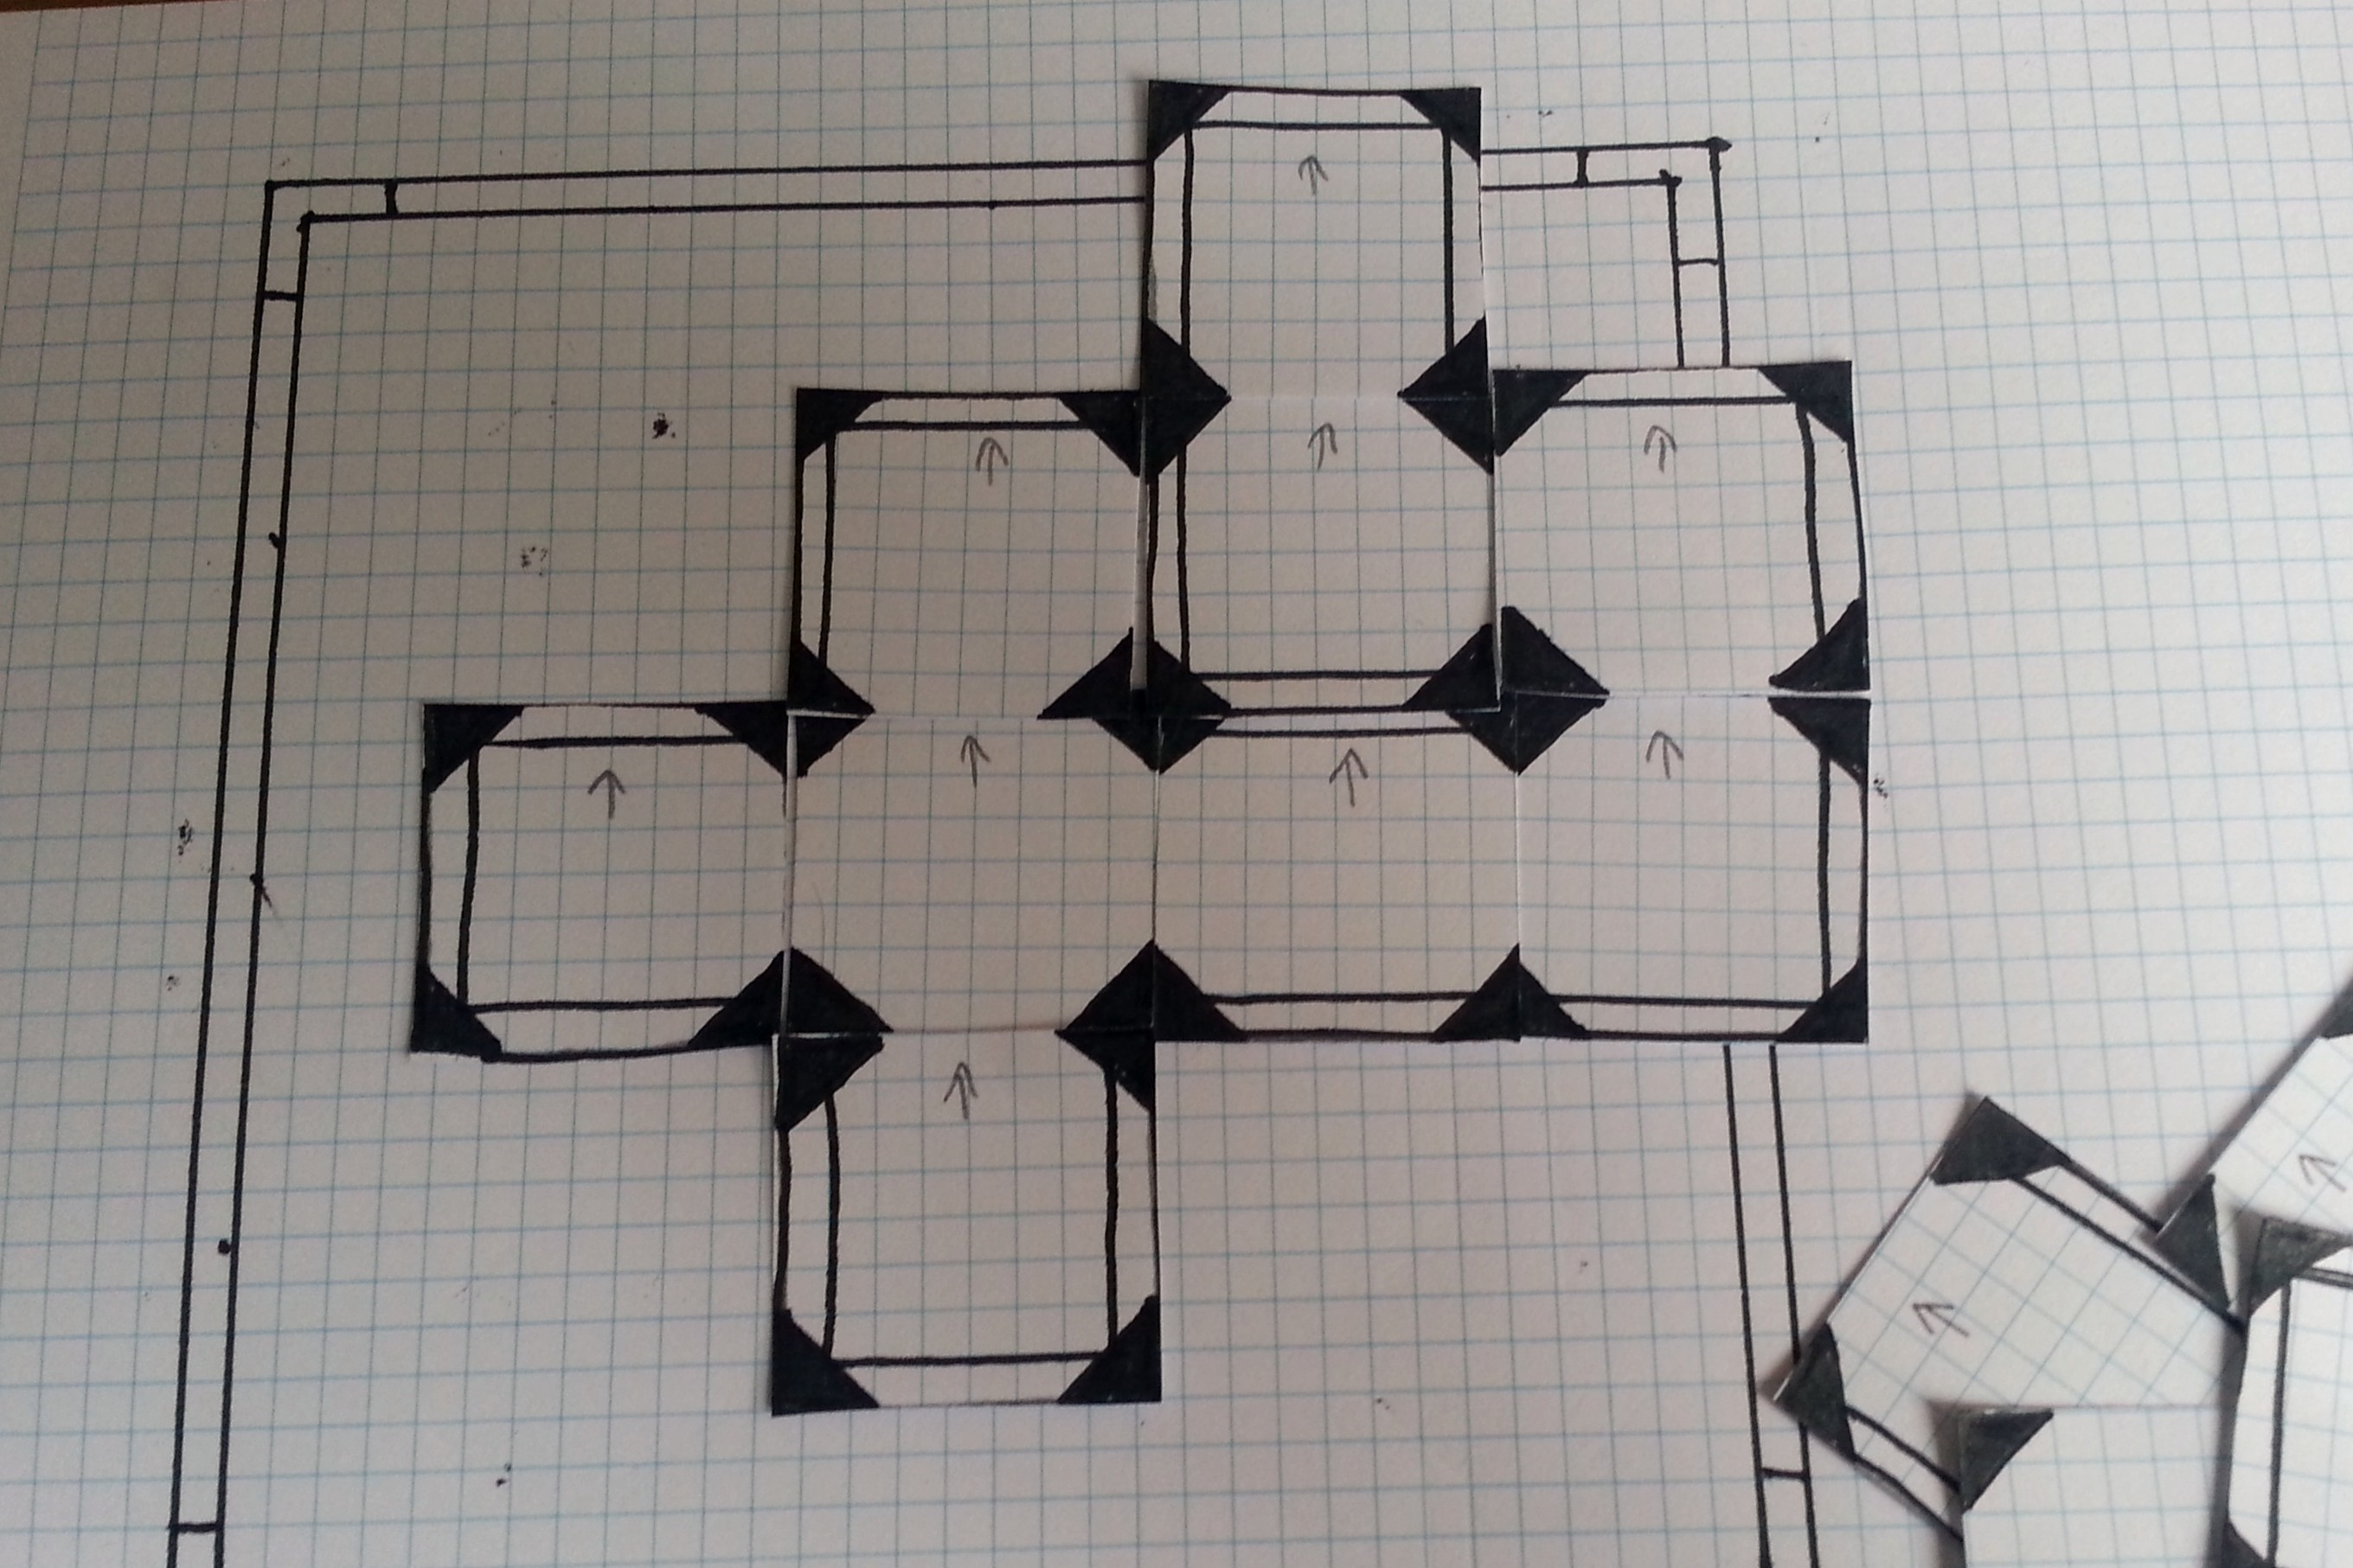 This is not a particularly impressive maze but it does give an idea of how combinations of tiles can come together.